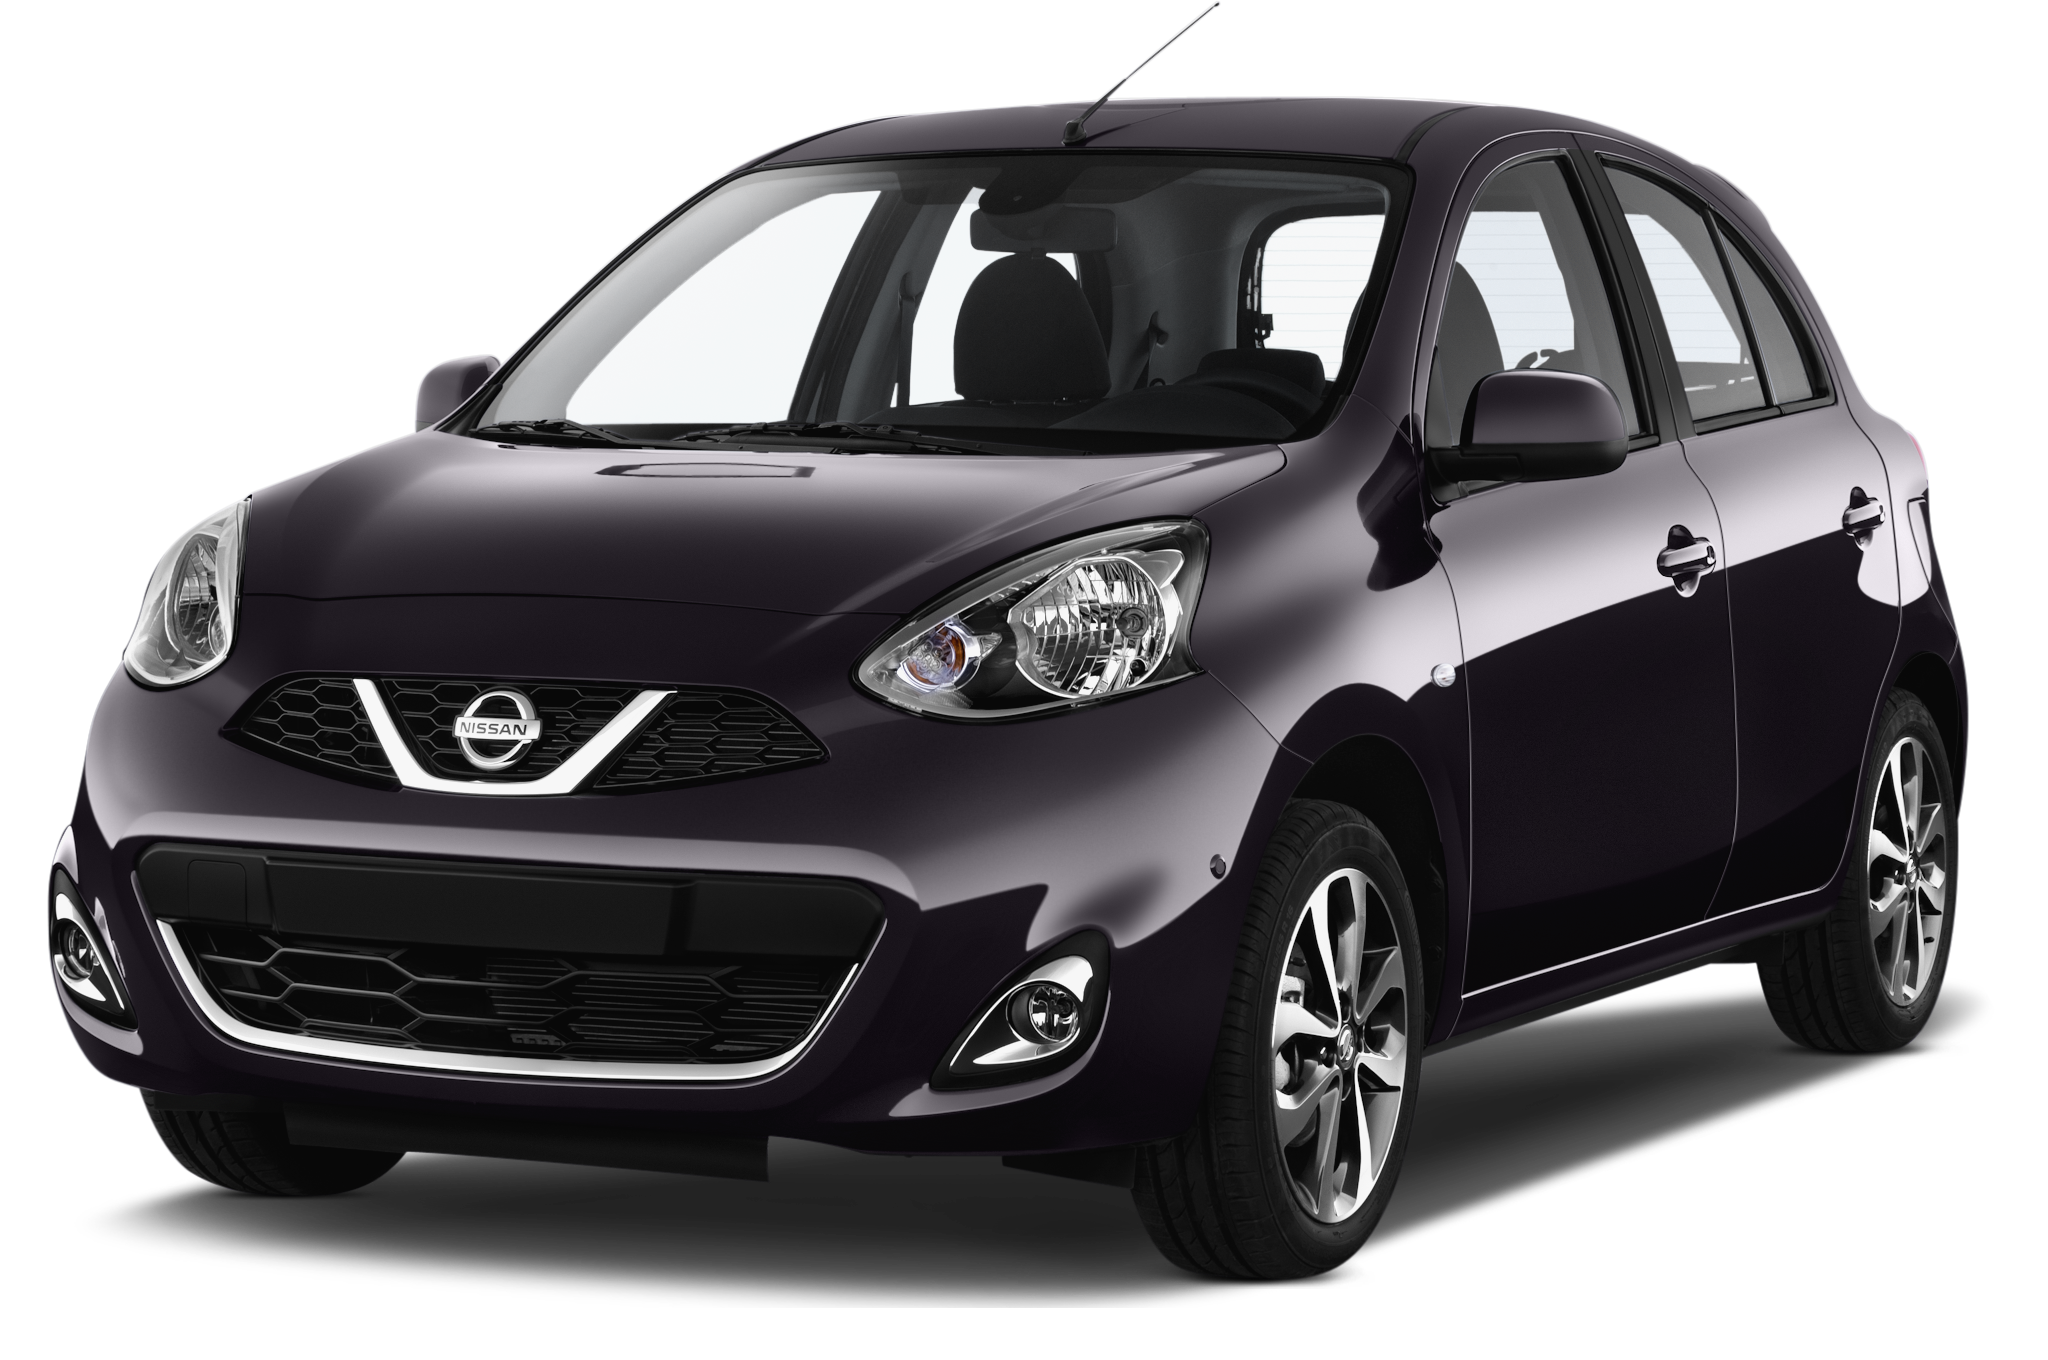 2015 nissan micra overview msn autos. Black Bedroom Furniture Sets. Home Design Ideas